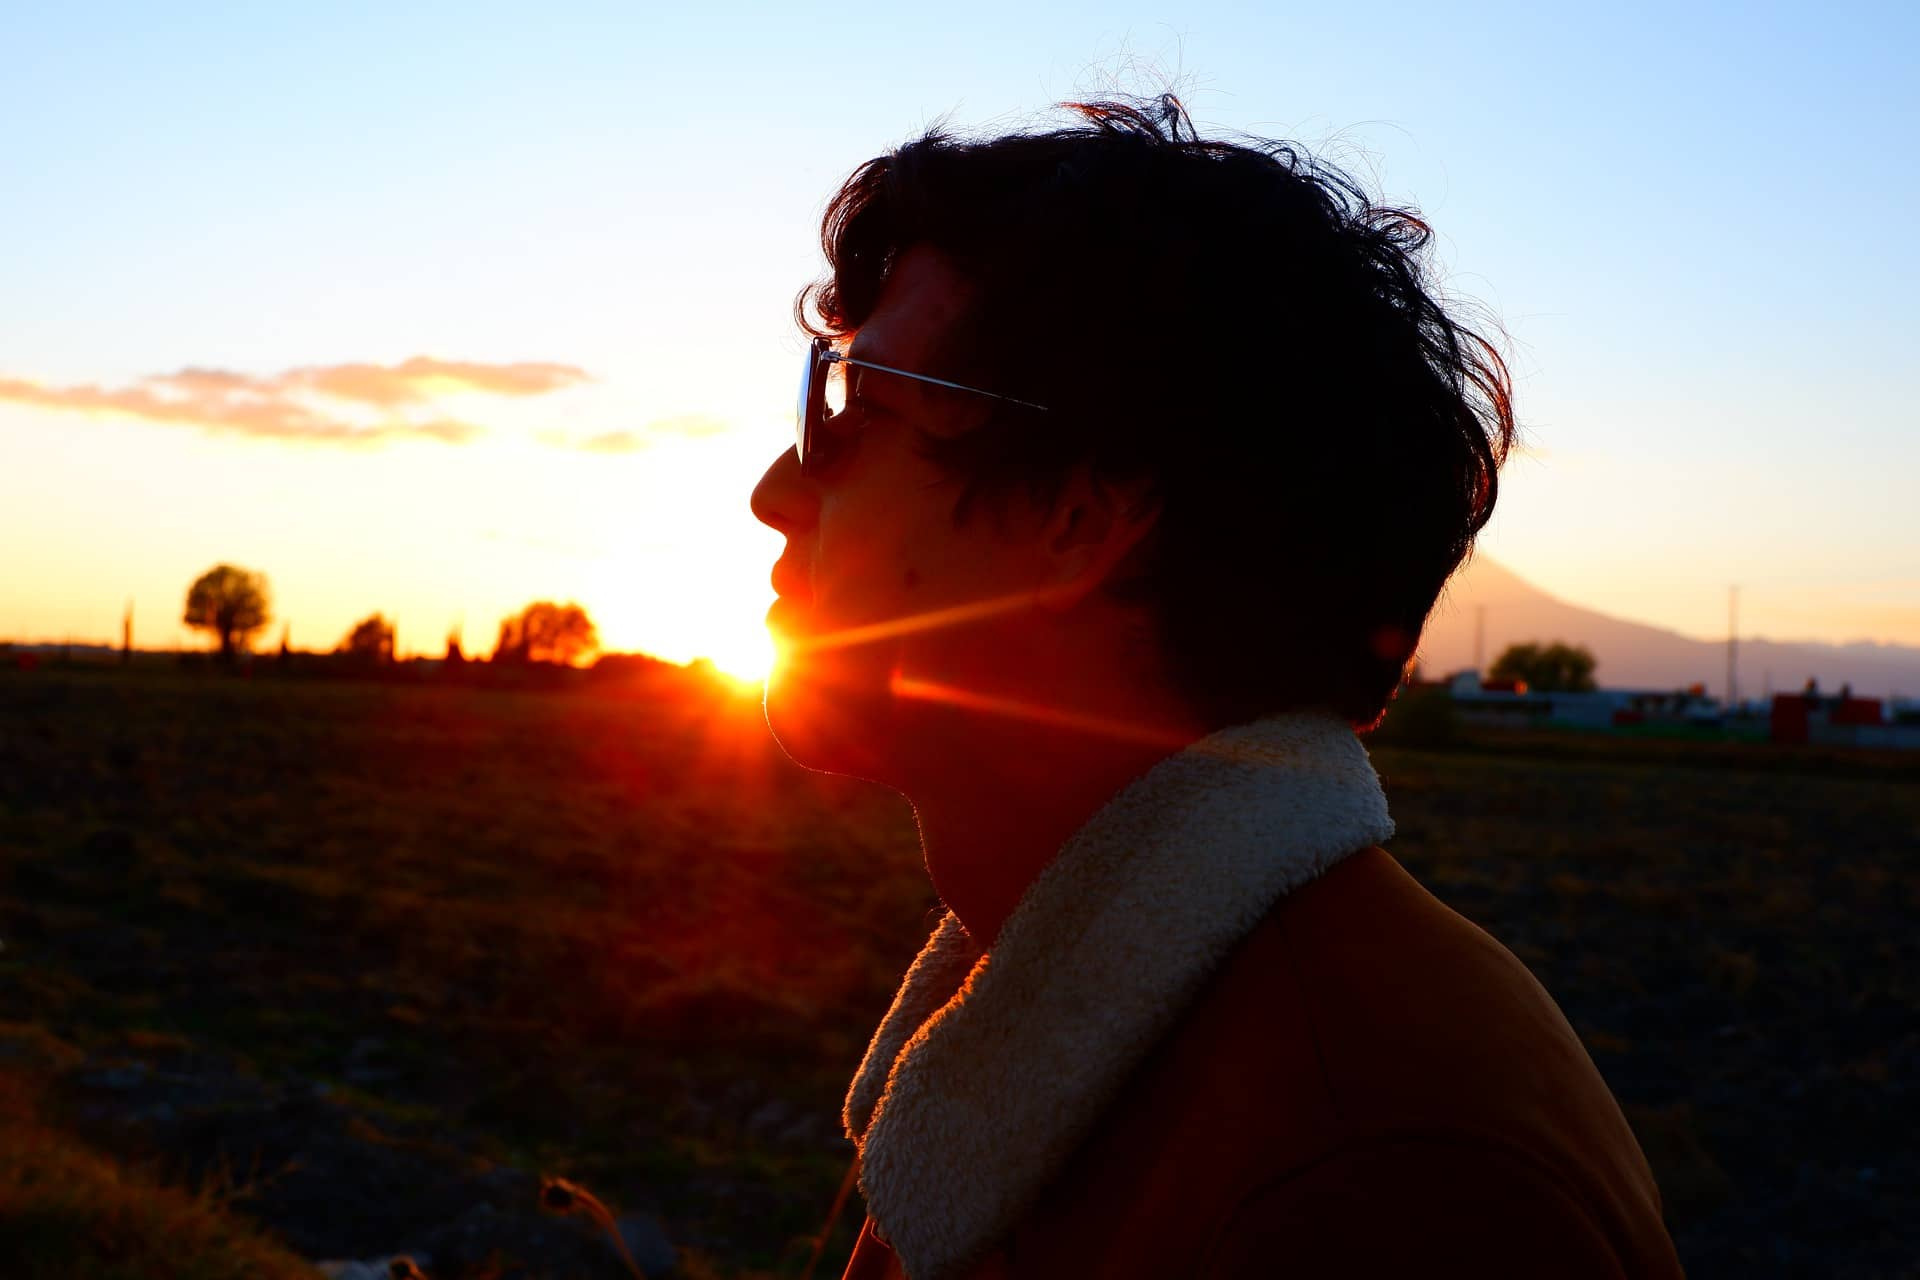 Man with glasses looking at sunset